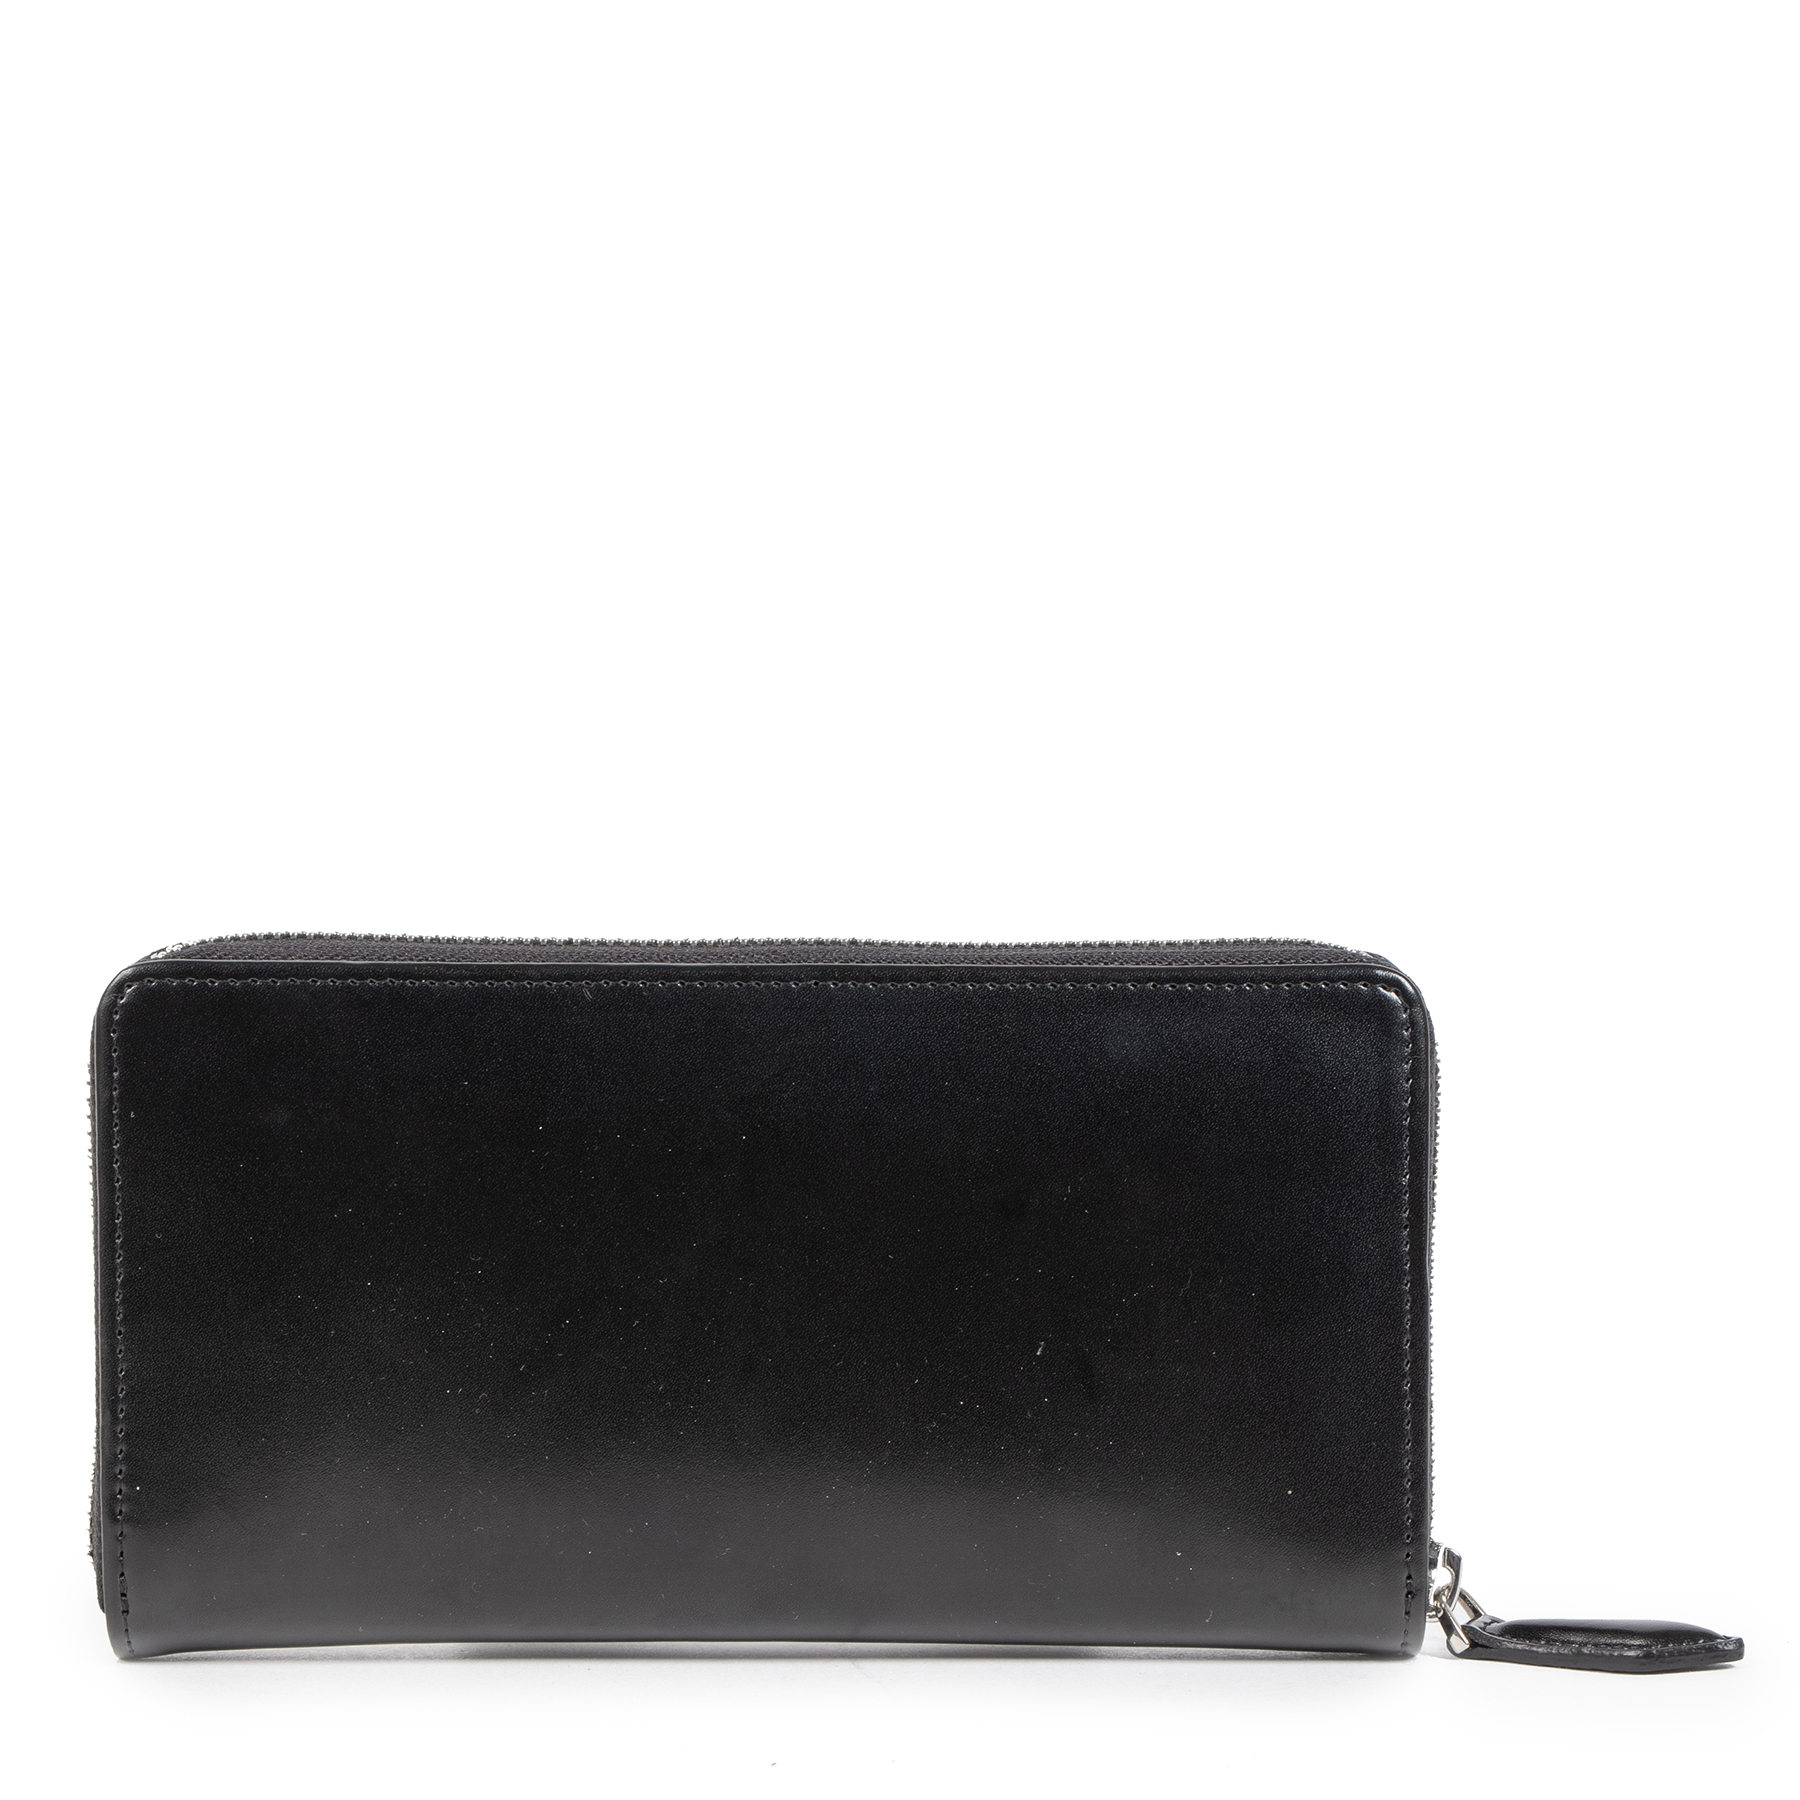 Authentique seconde-main vintage Roberto Cavalli Black Studs Wallet  achète en ligne webshop LabelLOV